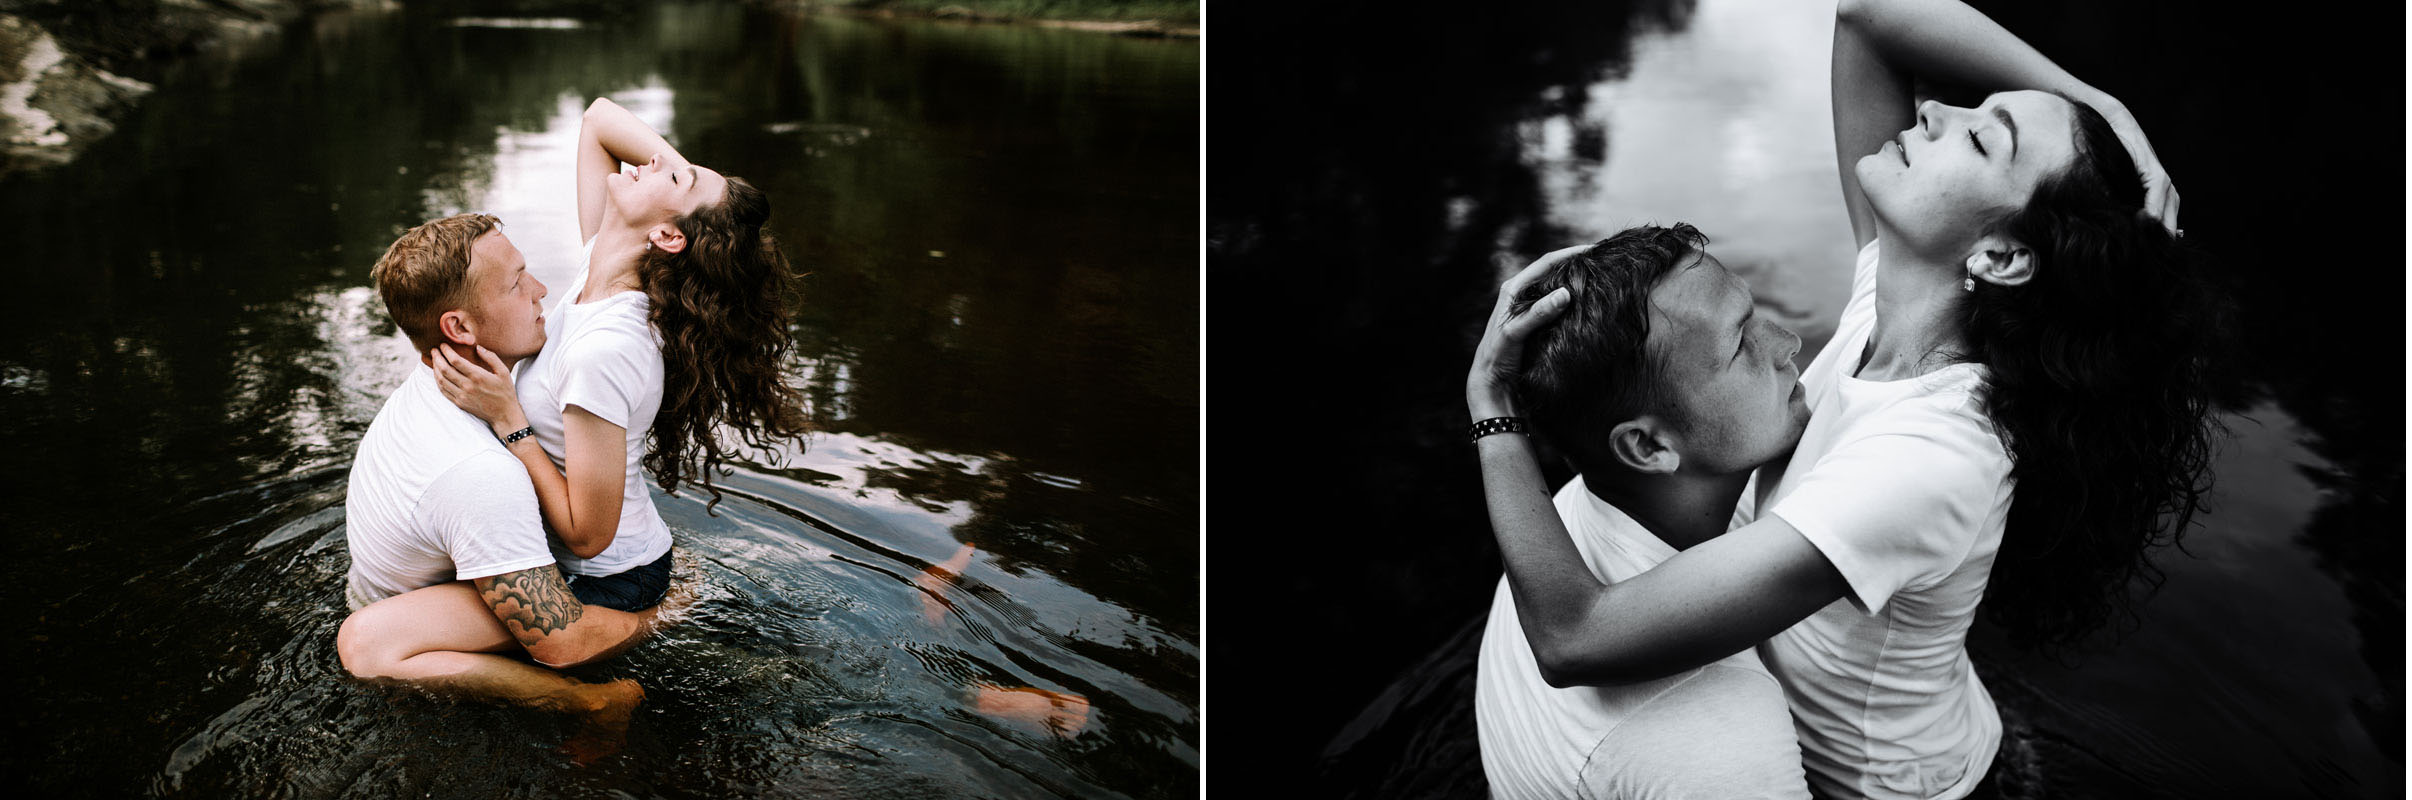 Intimate-couple-river-session-valdosta-wedding-photographers (44).jpg